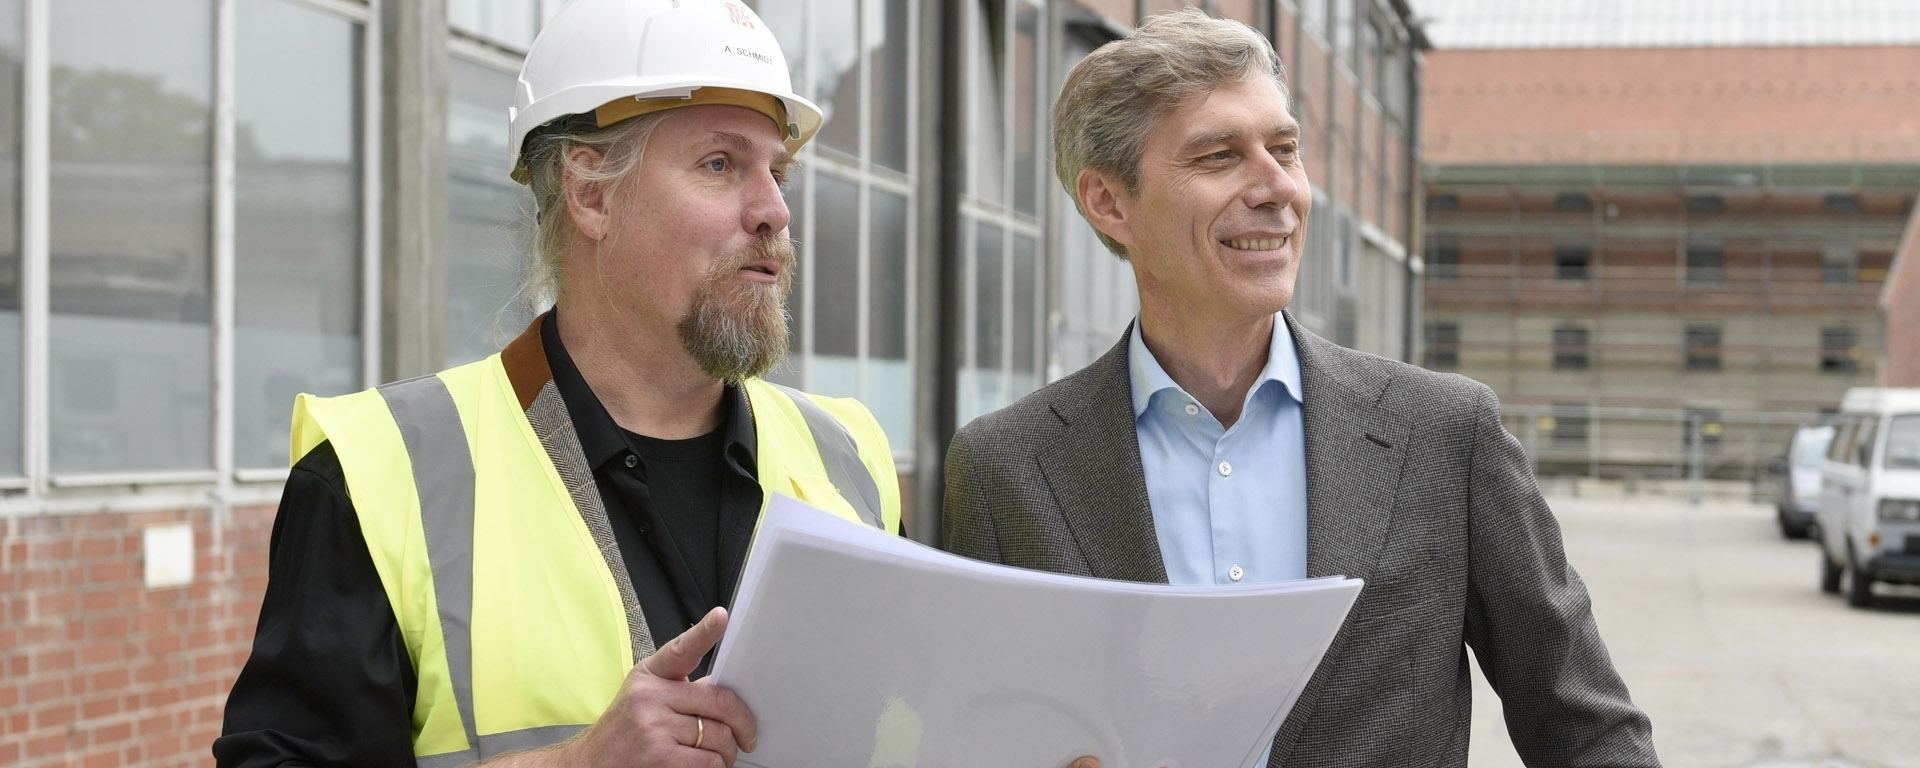 Our man on the Job: Andreas Schmidt is Site Manager at Gasteig Sendling